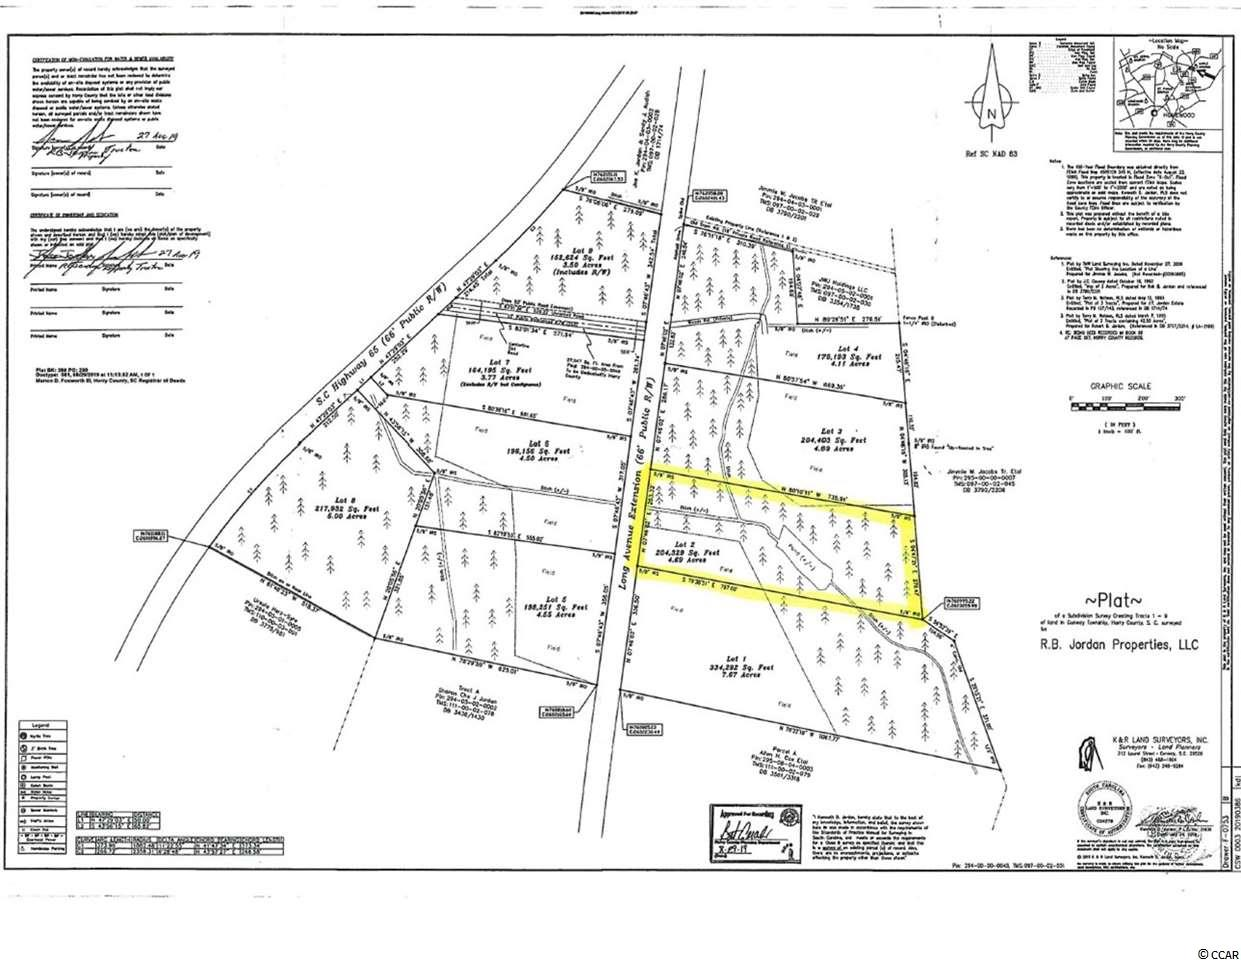 4.69 Acs on Long Ave Ext. Mostly wooded. Pond on property. Water and Sewer to site. Just outside of City limits. Only restricted to stick built homes and lots can't be subdivided less than 1.5 Acs.